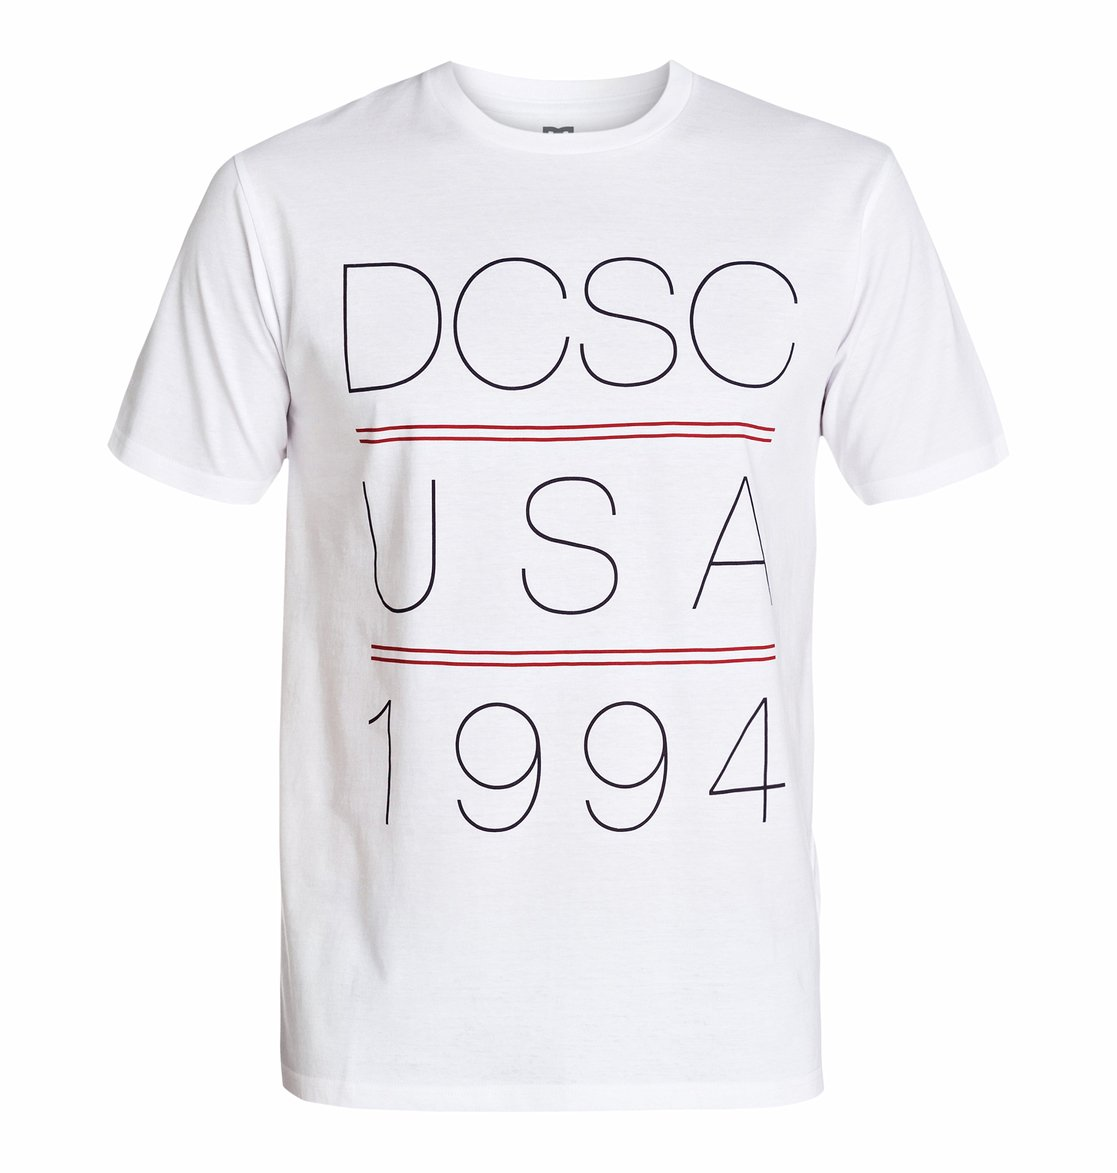 Backline Short Sleeve - Dcshoes������� �������� � ����������� ������� Backline SS �� DC Shoes � ������� �� ��������� ����� 2015. ��������������: ����������� ����, ������� ���������� ��������� ������� Softhand Ink.<br>